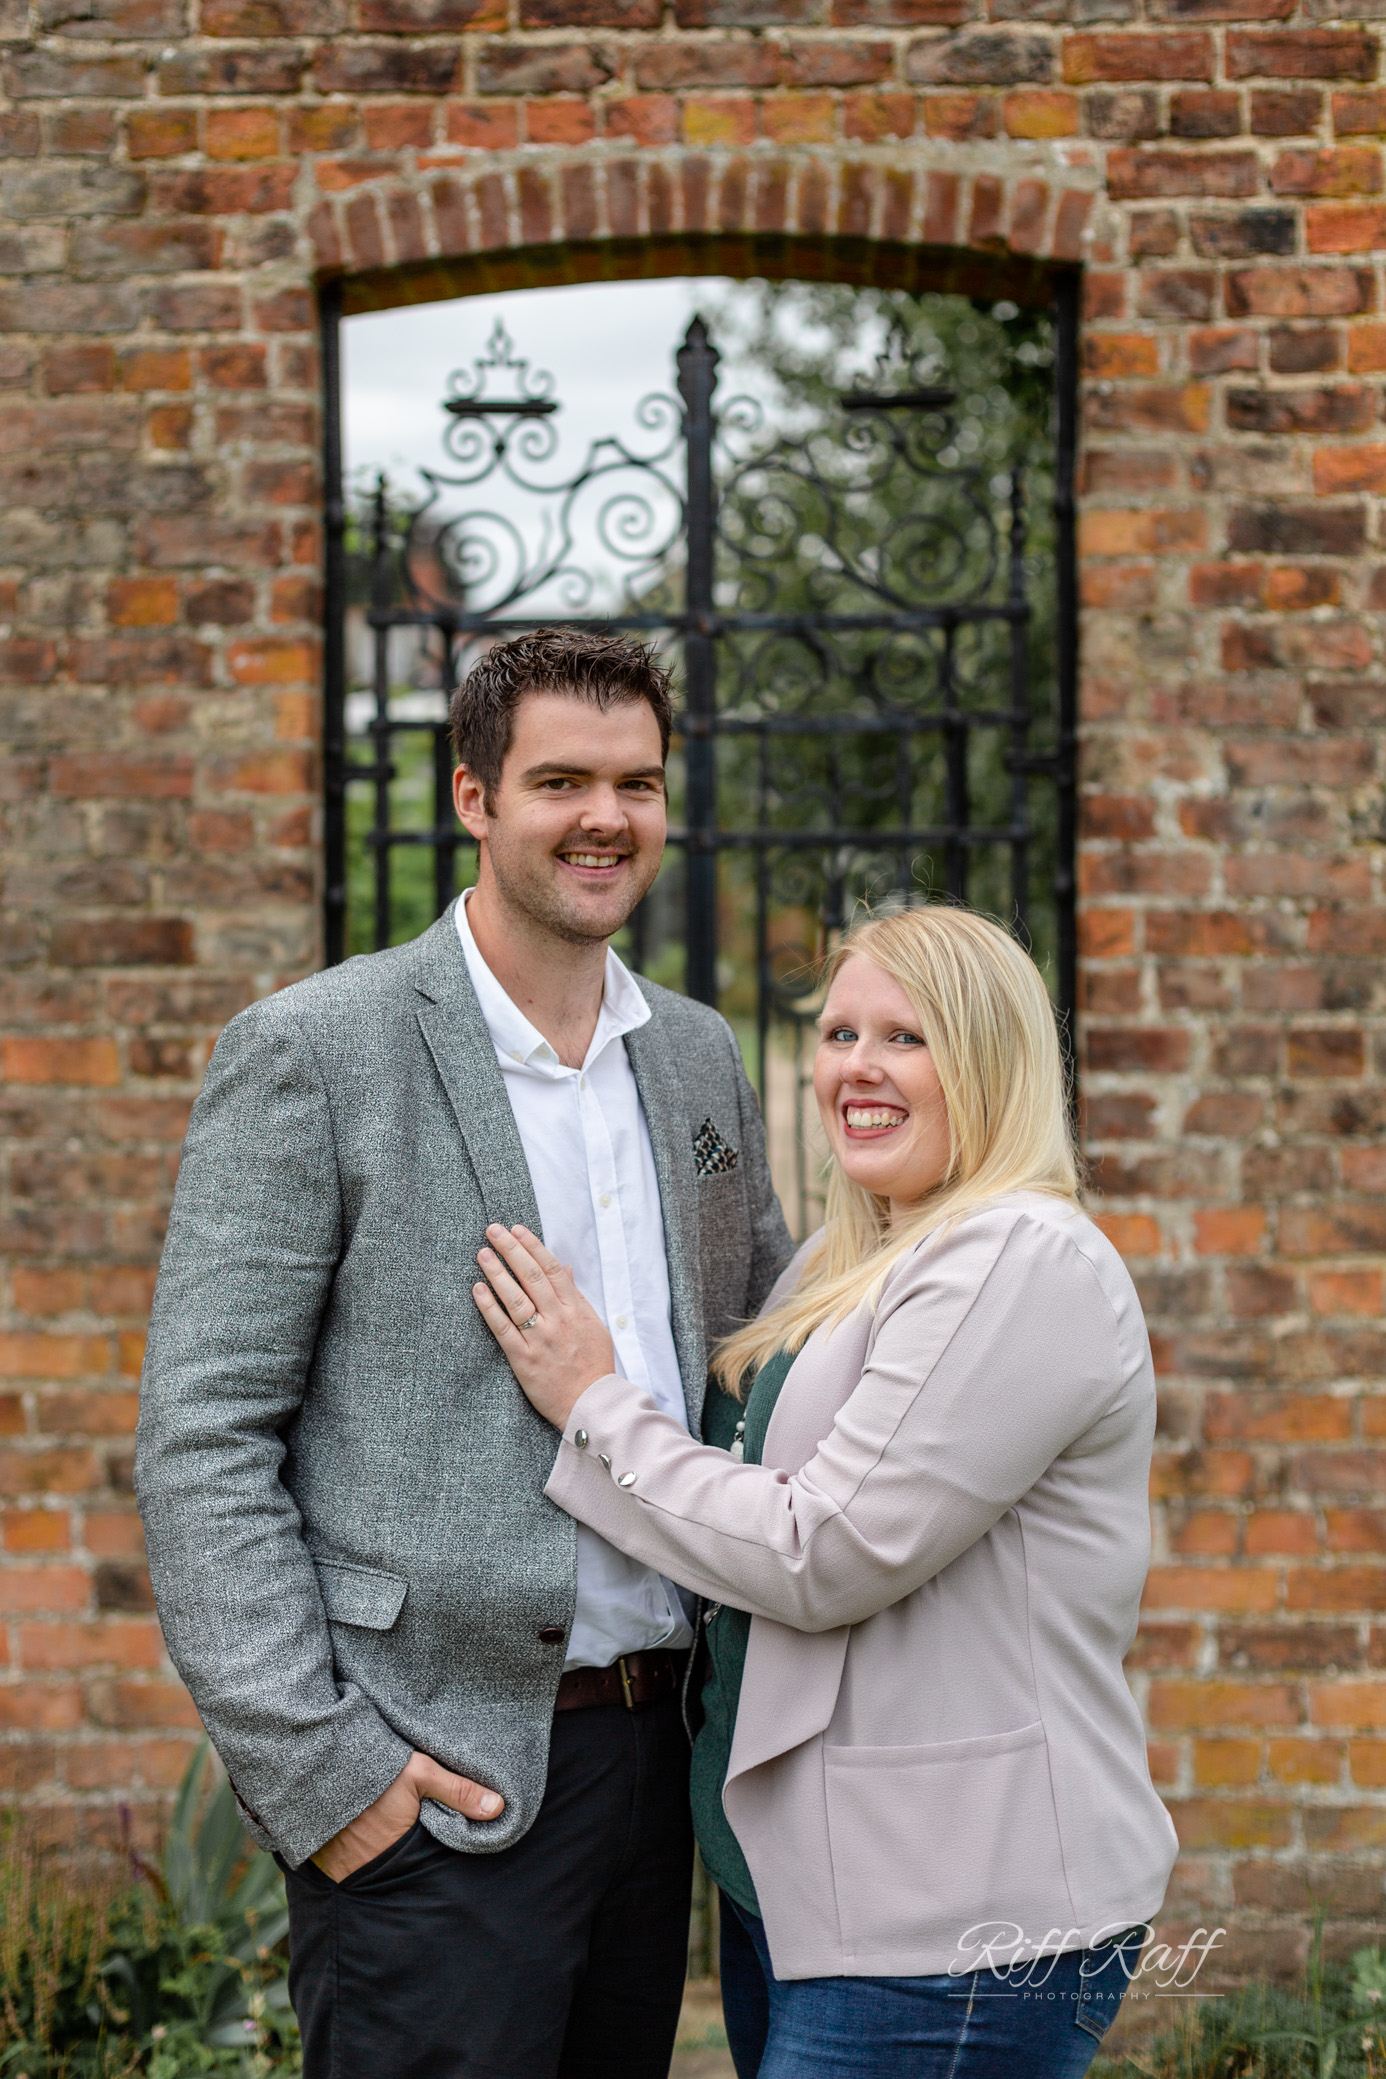 Fiona & Adam Engagement Shoot Blog-033.jpg